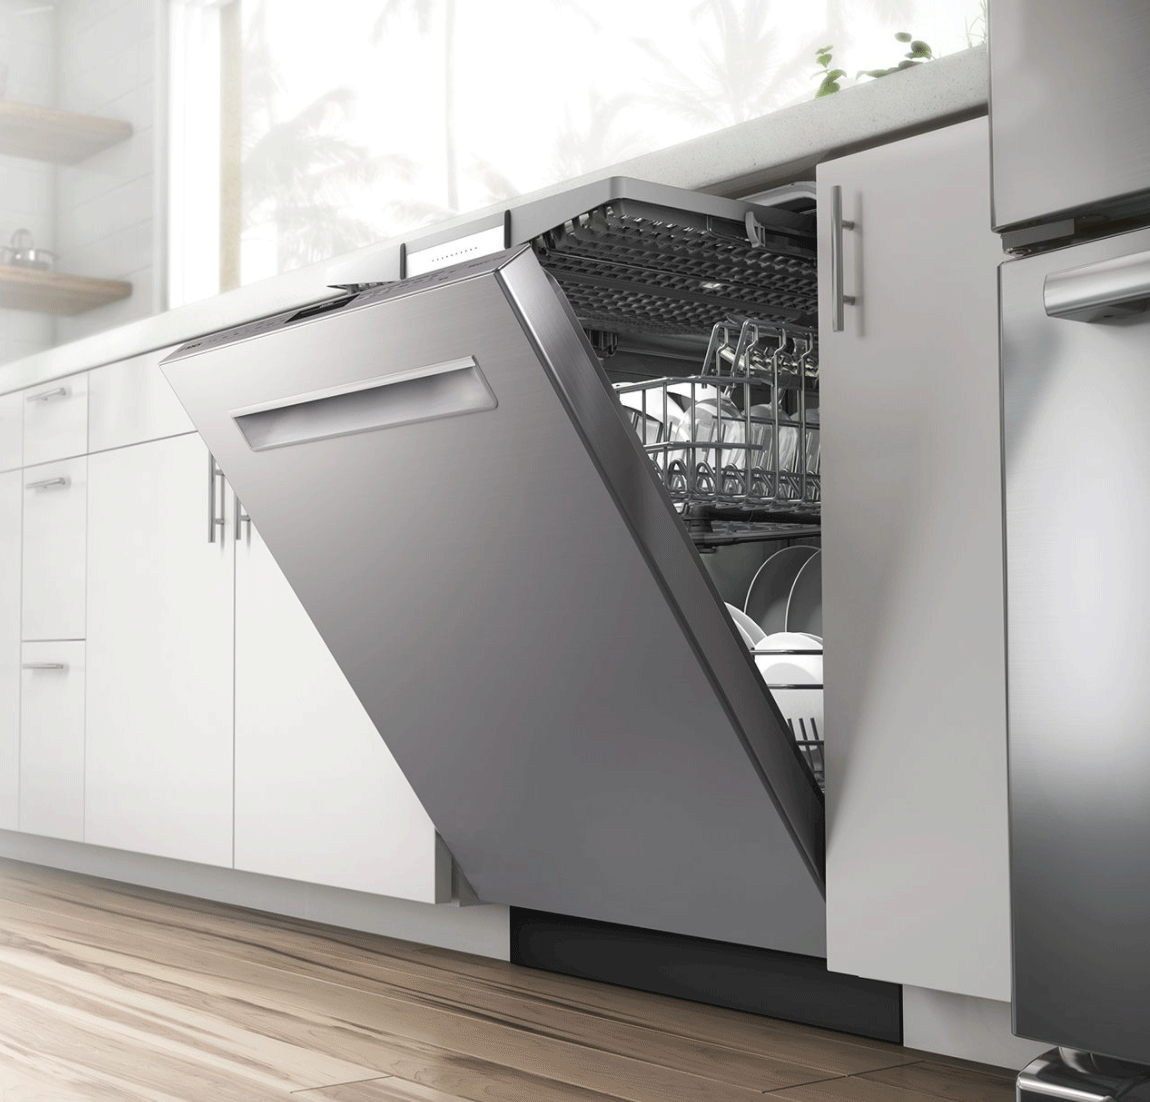 Bosch Dishwasher Review - Ascenta vs. 300 vs. 500 vs. 800 Series